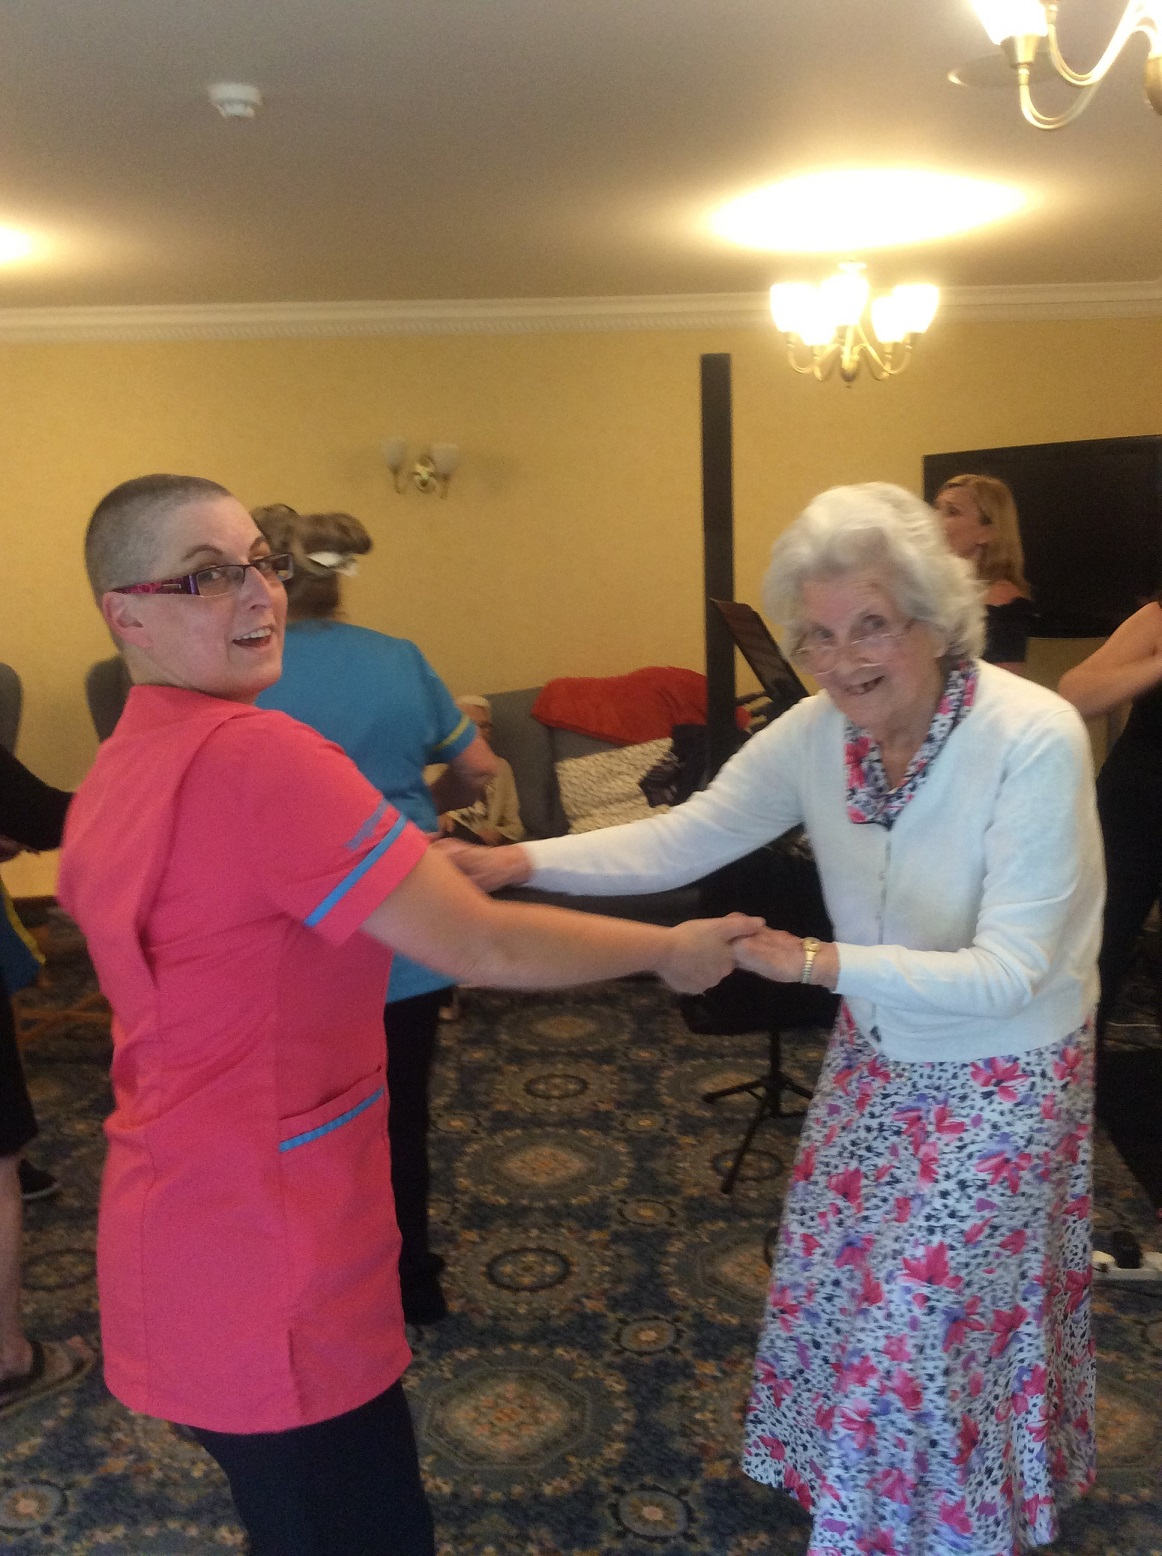 Resident Beryl and team member Emma were twisting the afternoon away!